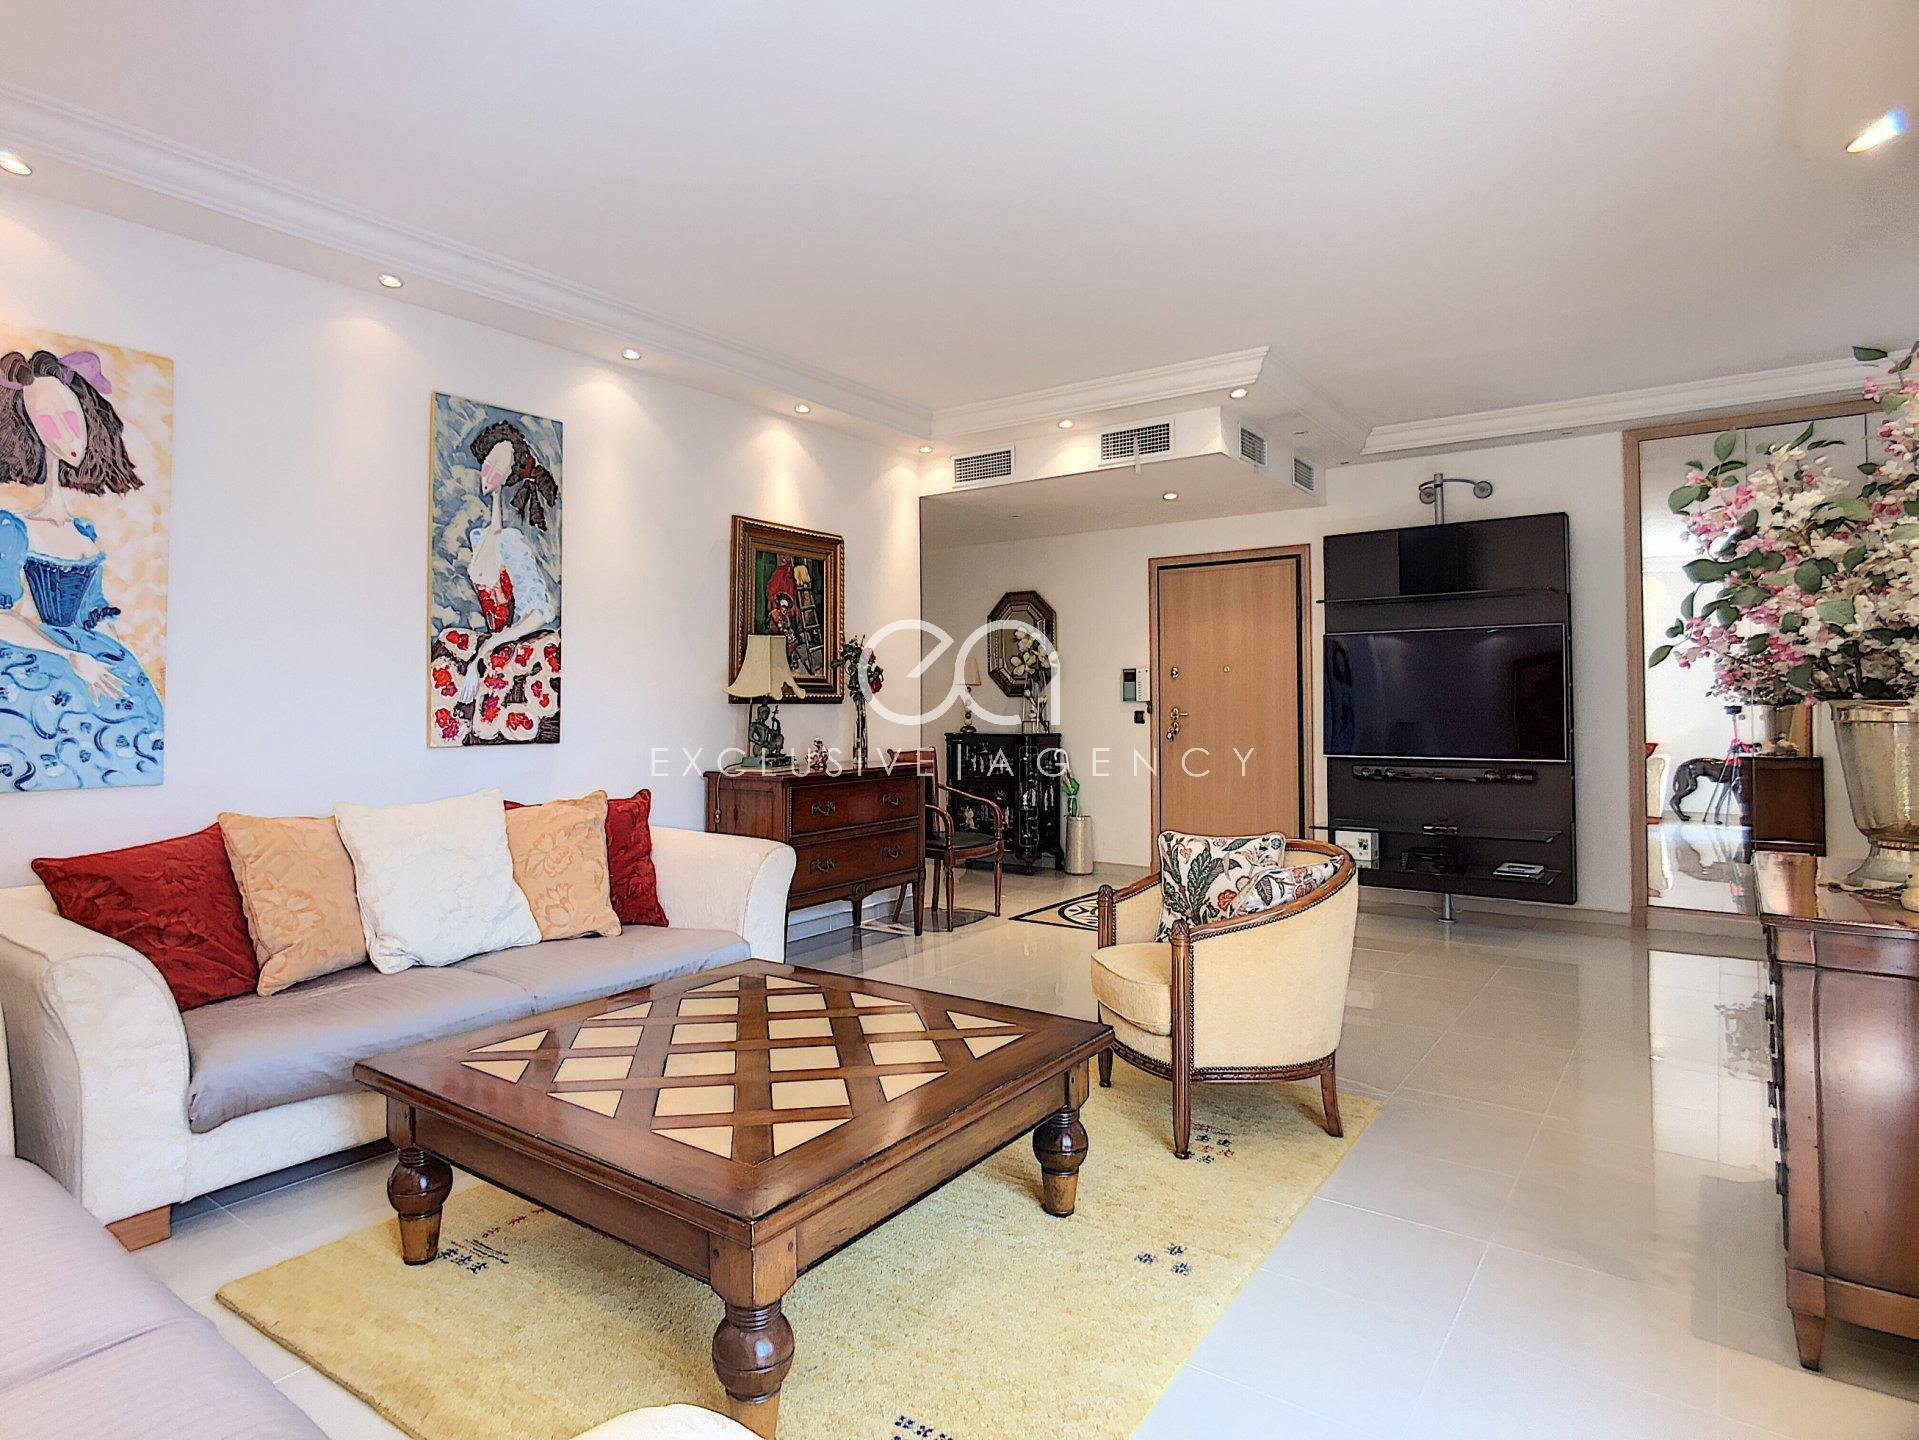 Cannes CROISETTE FOR MONTHLY RENTAL  2 bedroom 110SQM with terrace.